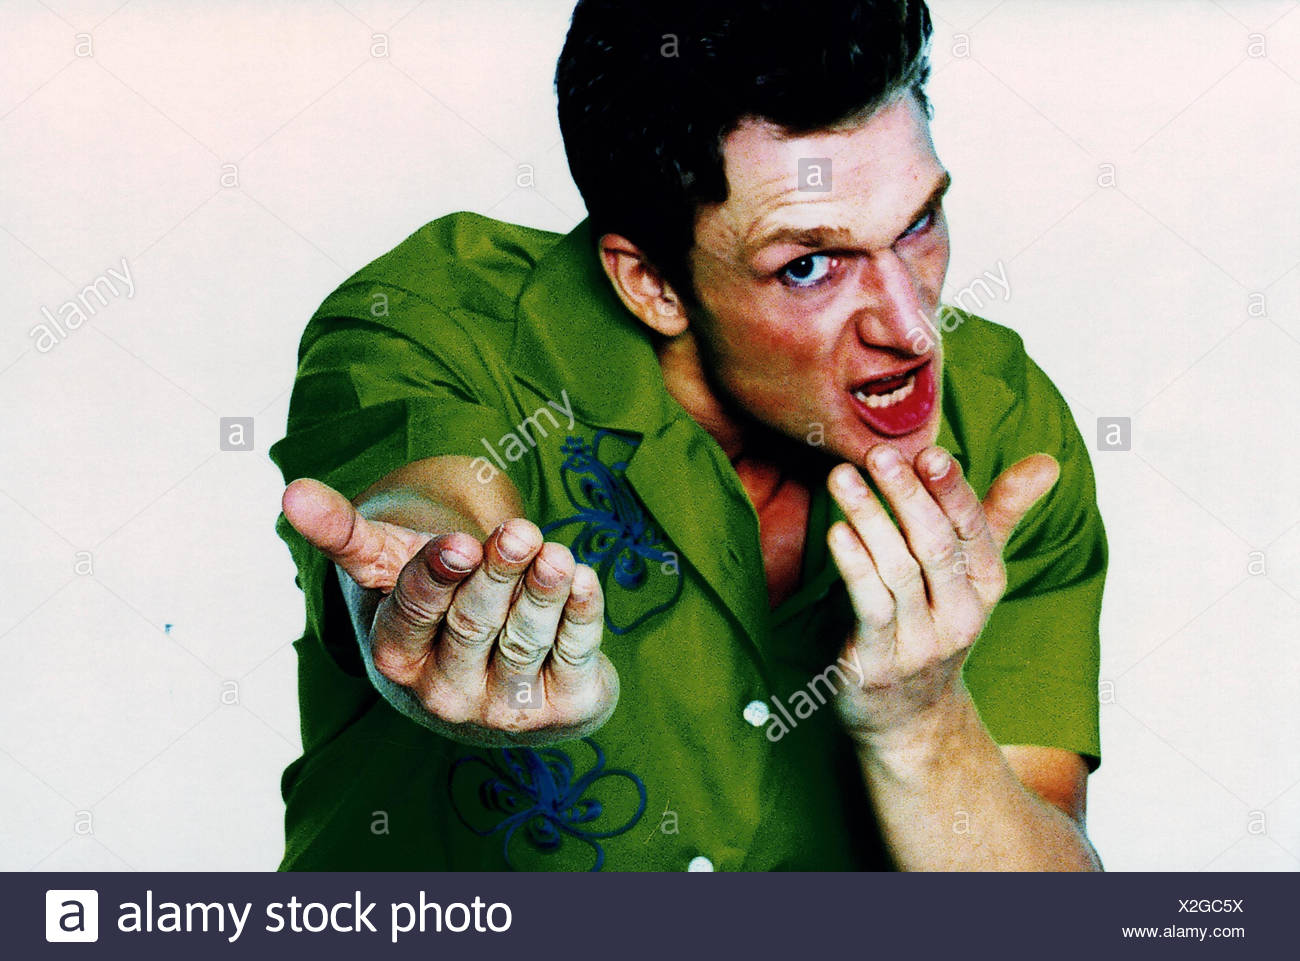 Man, fury, gesture, request, portrait, studio, cut out, emotion, fury, provocation, aggressively, cantankerous, fight, readiness for violence, provoke, challenge, challenging, aggression, aggressively, aggressiveness, angers, nastily, fury, furiously, rag Stock Photo